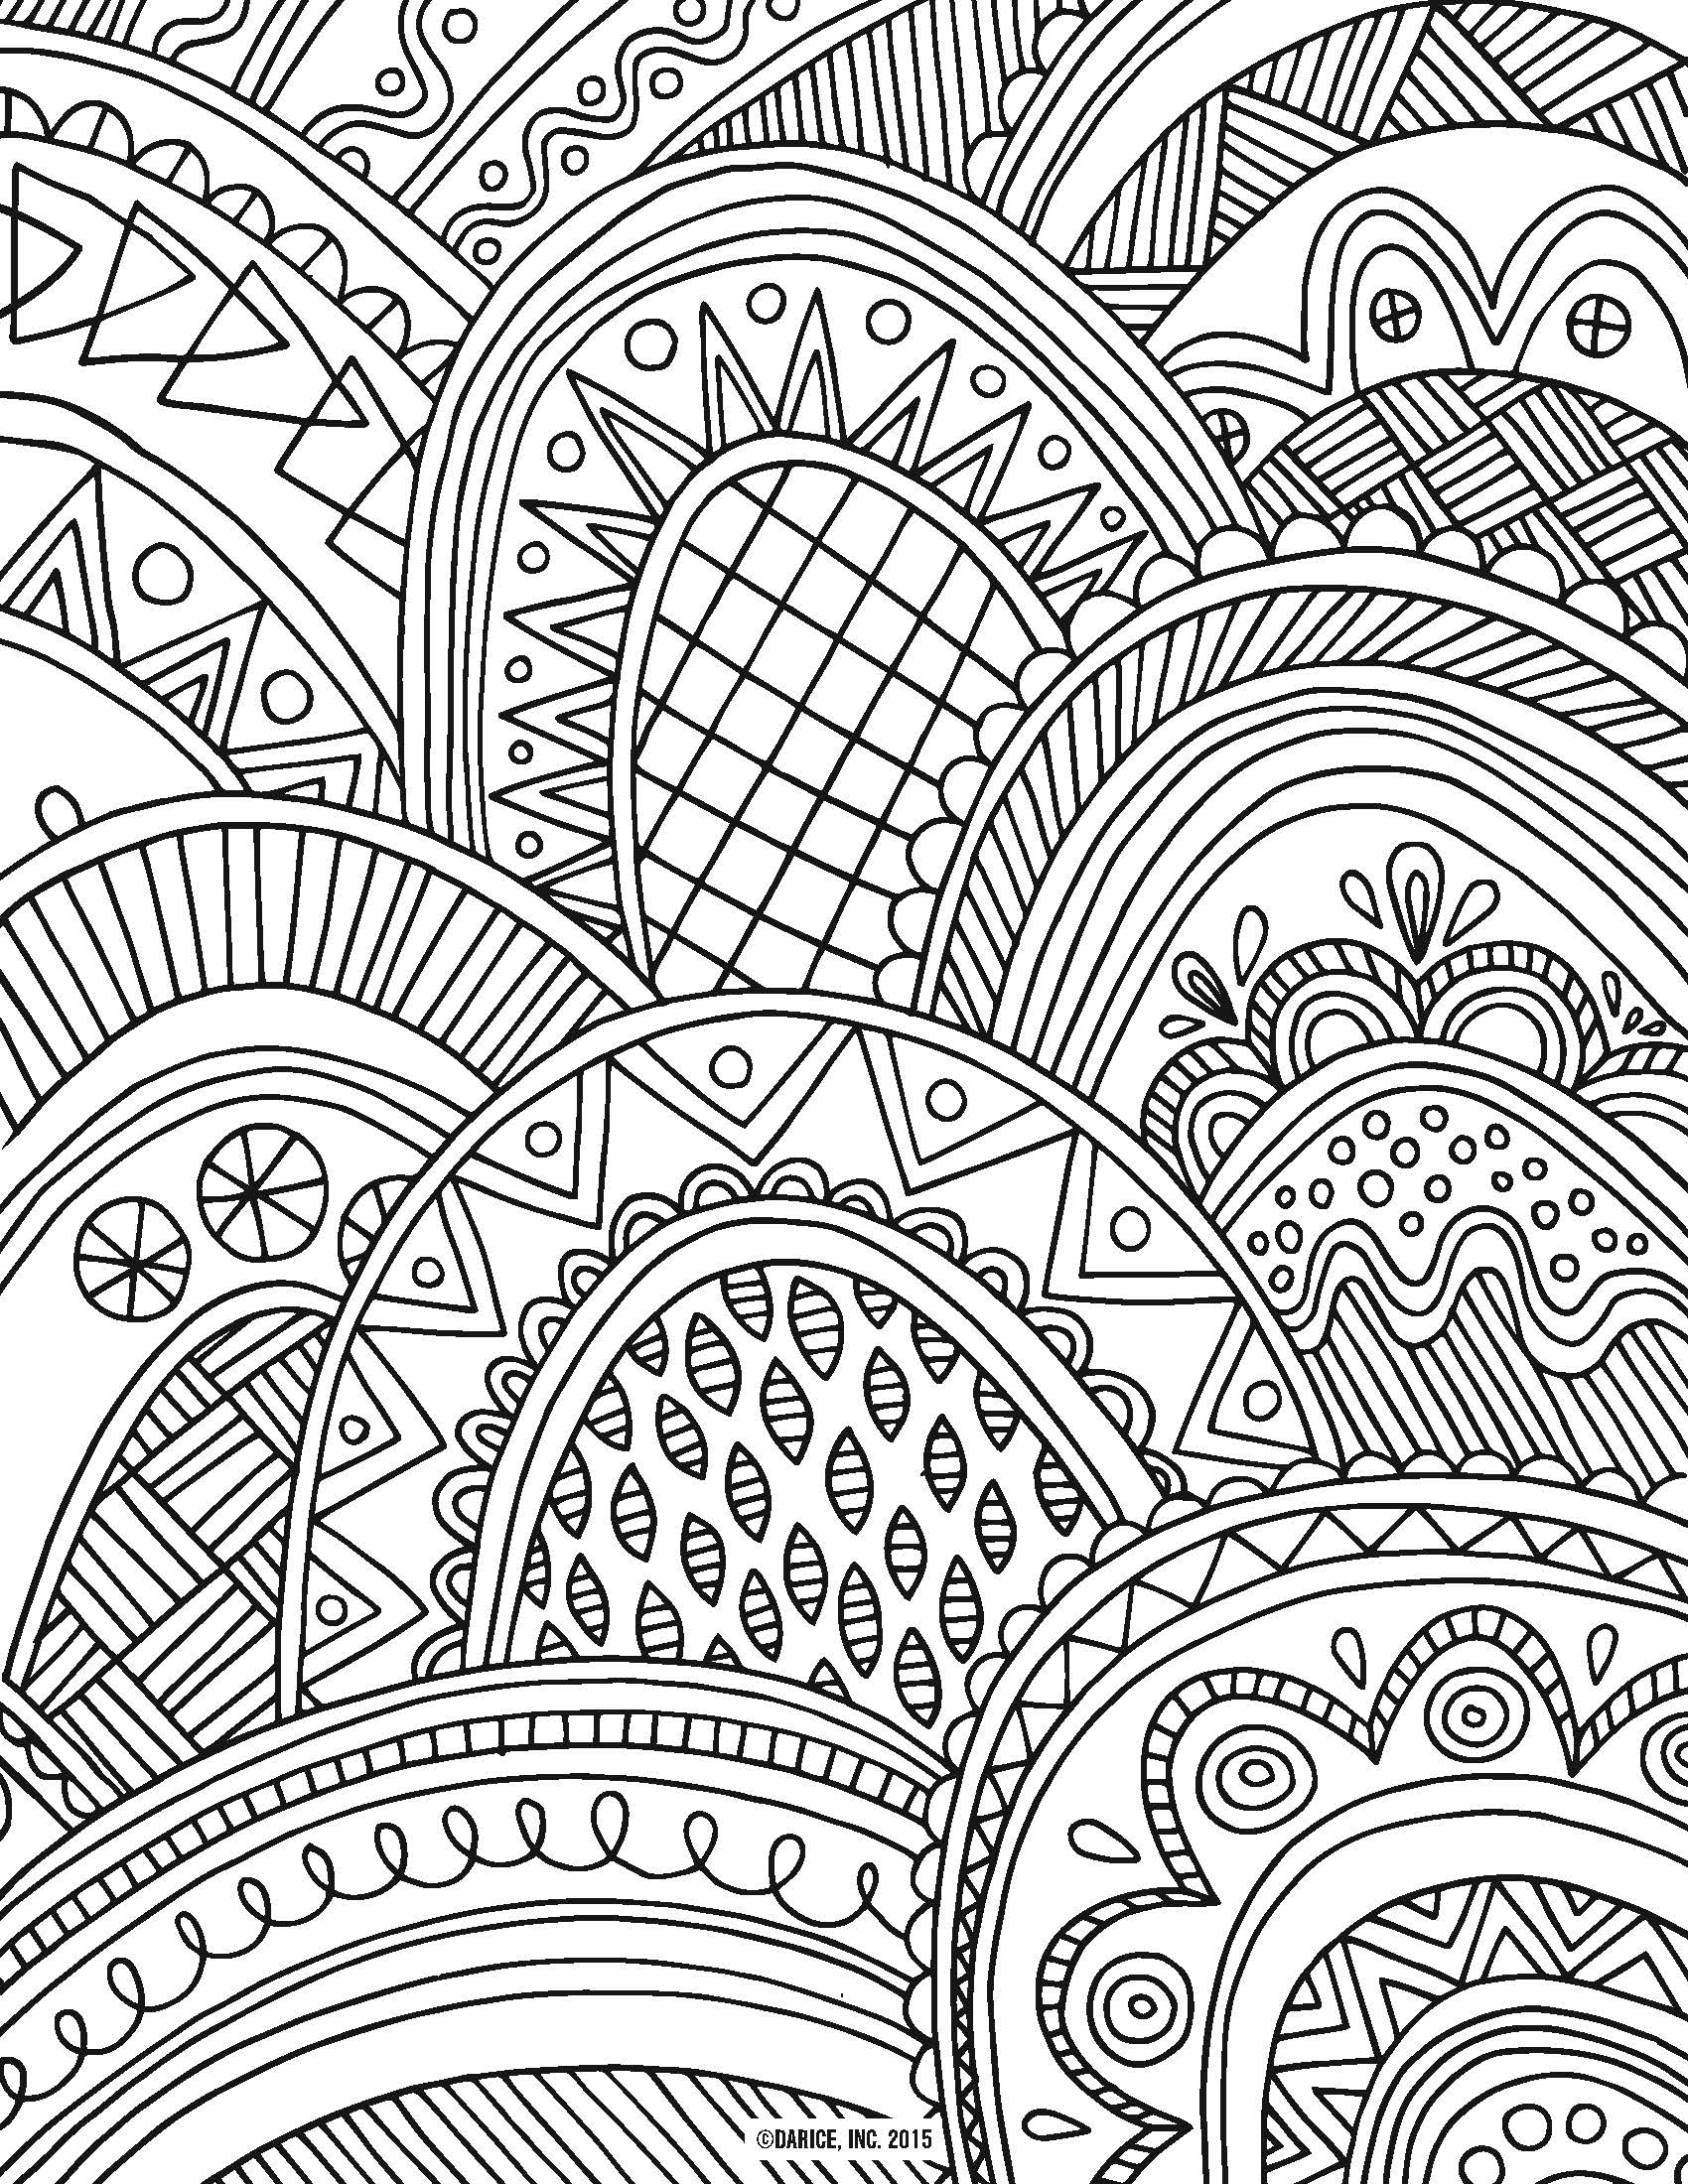 cool abstract coloring pages 20 attractive coloring pages for adults we need fun cool abstract coloring pages